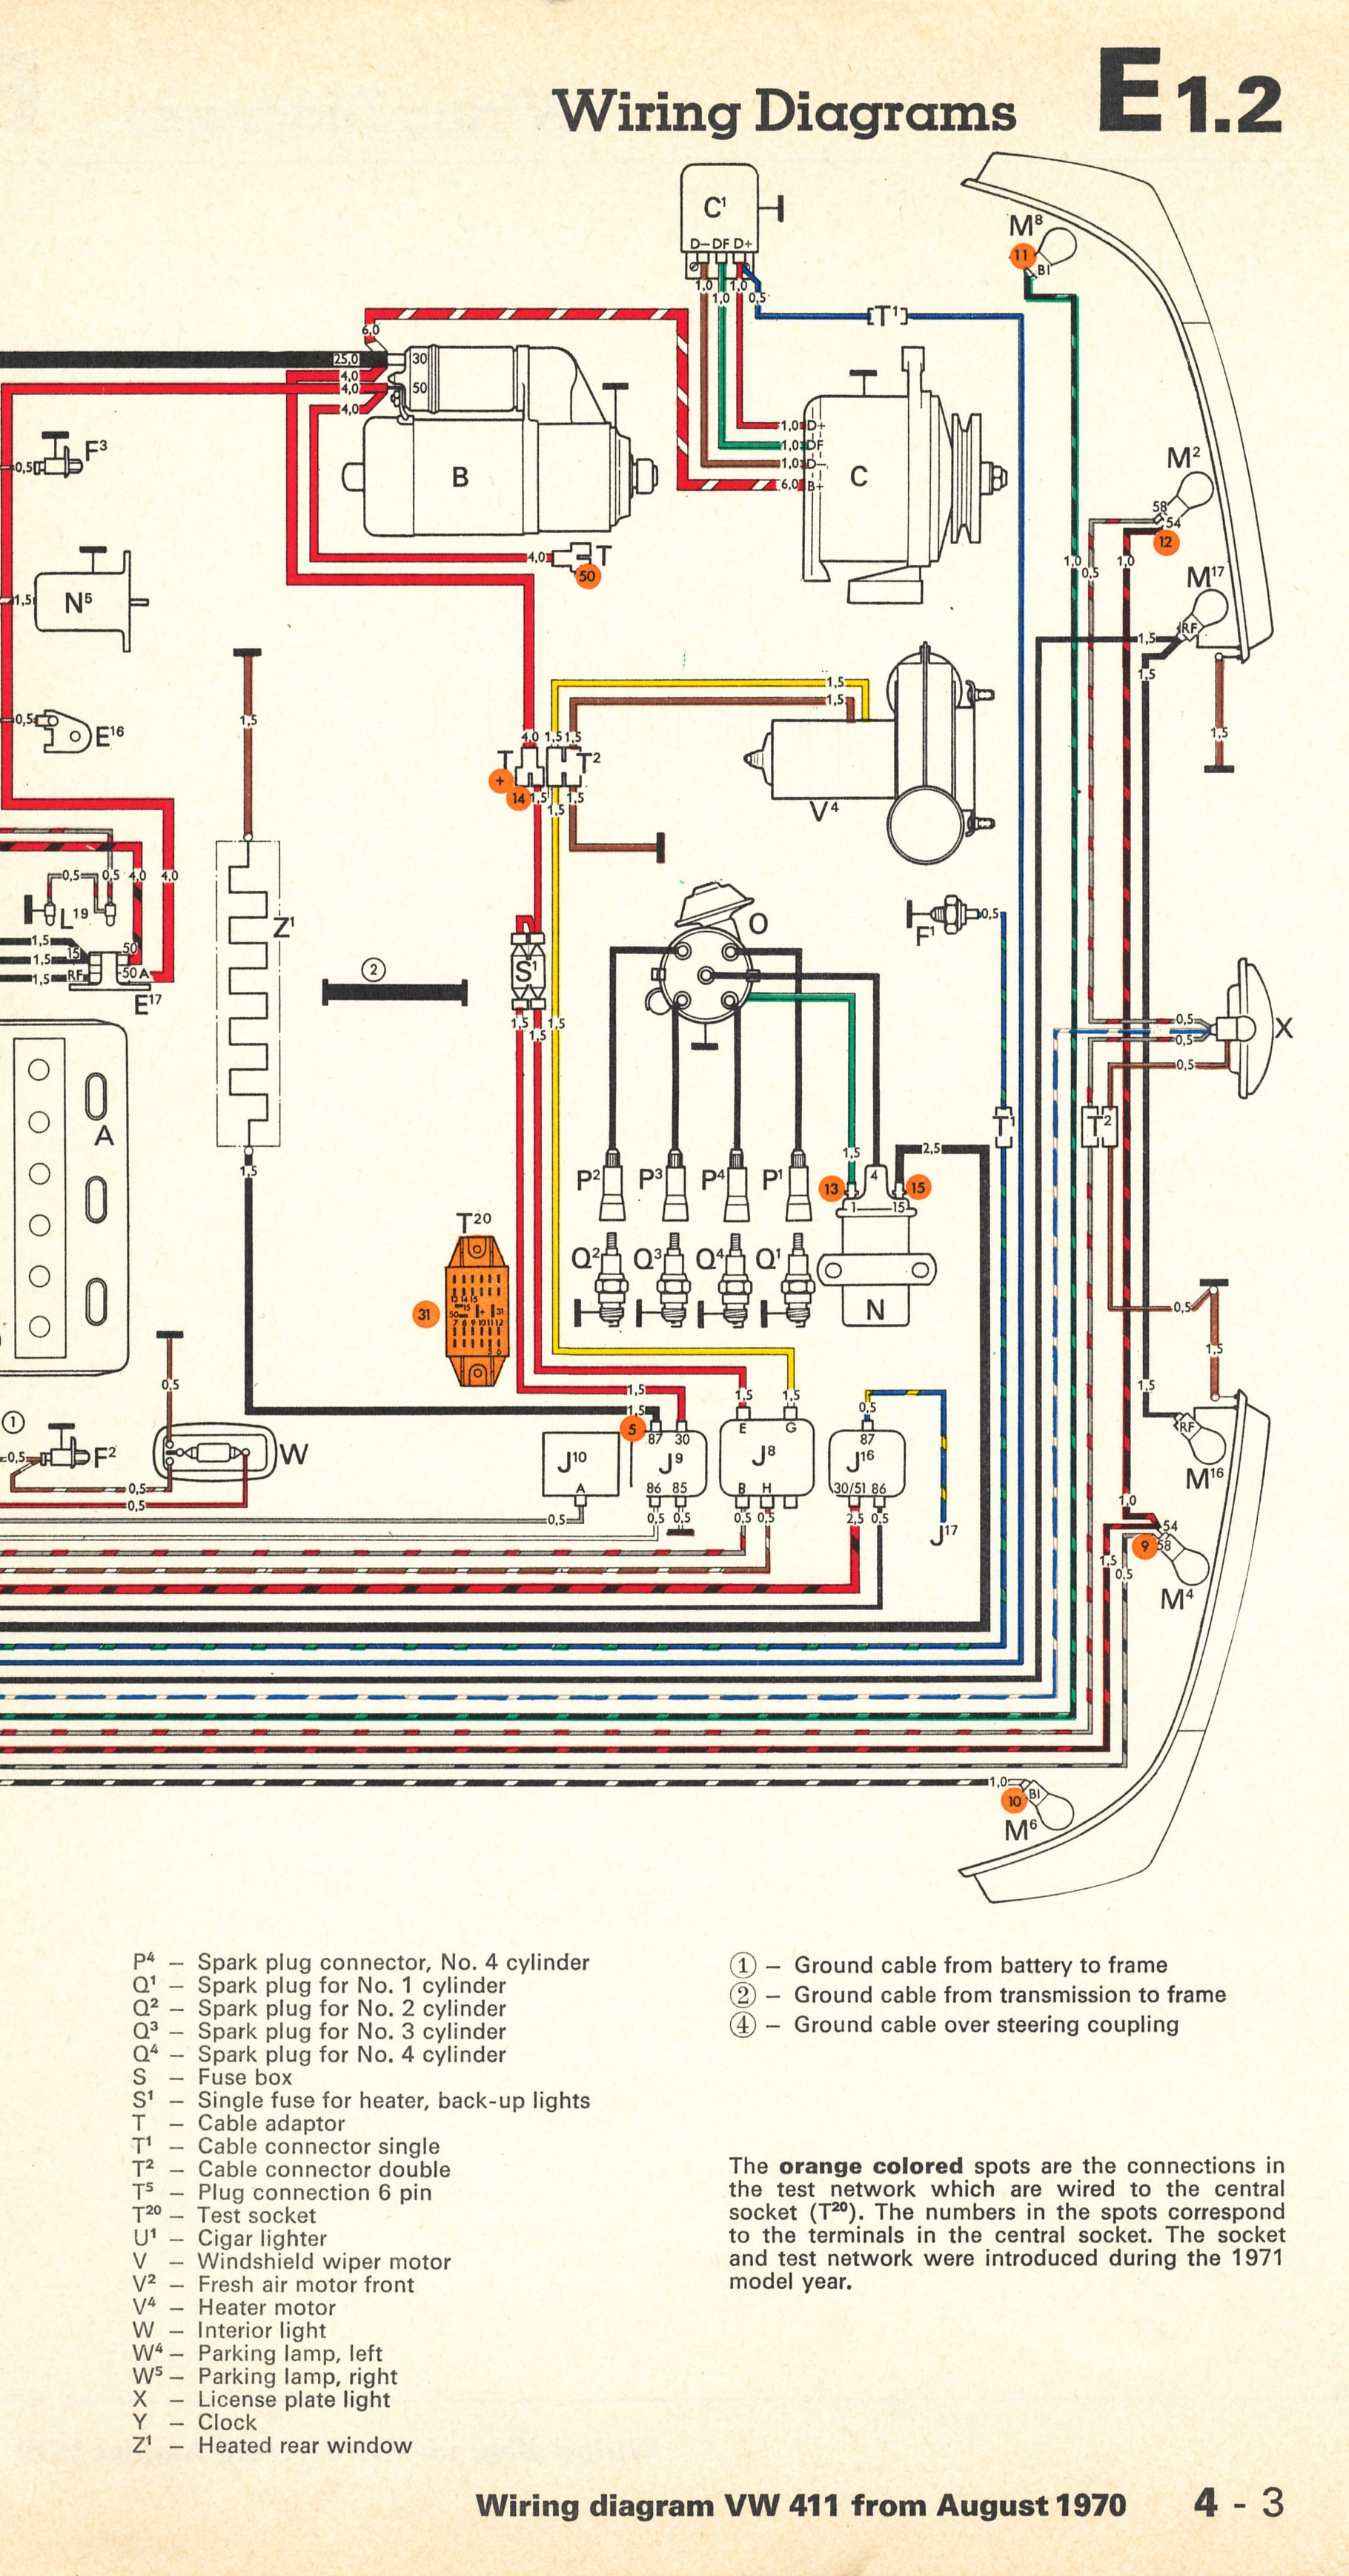 4 wire schematic wiring for 4 wire schematic wiring